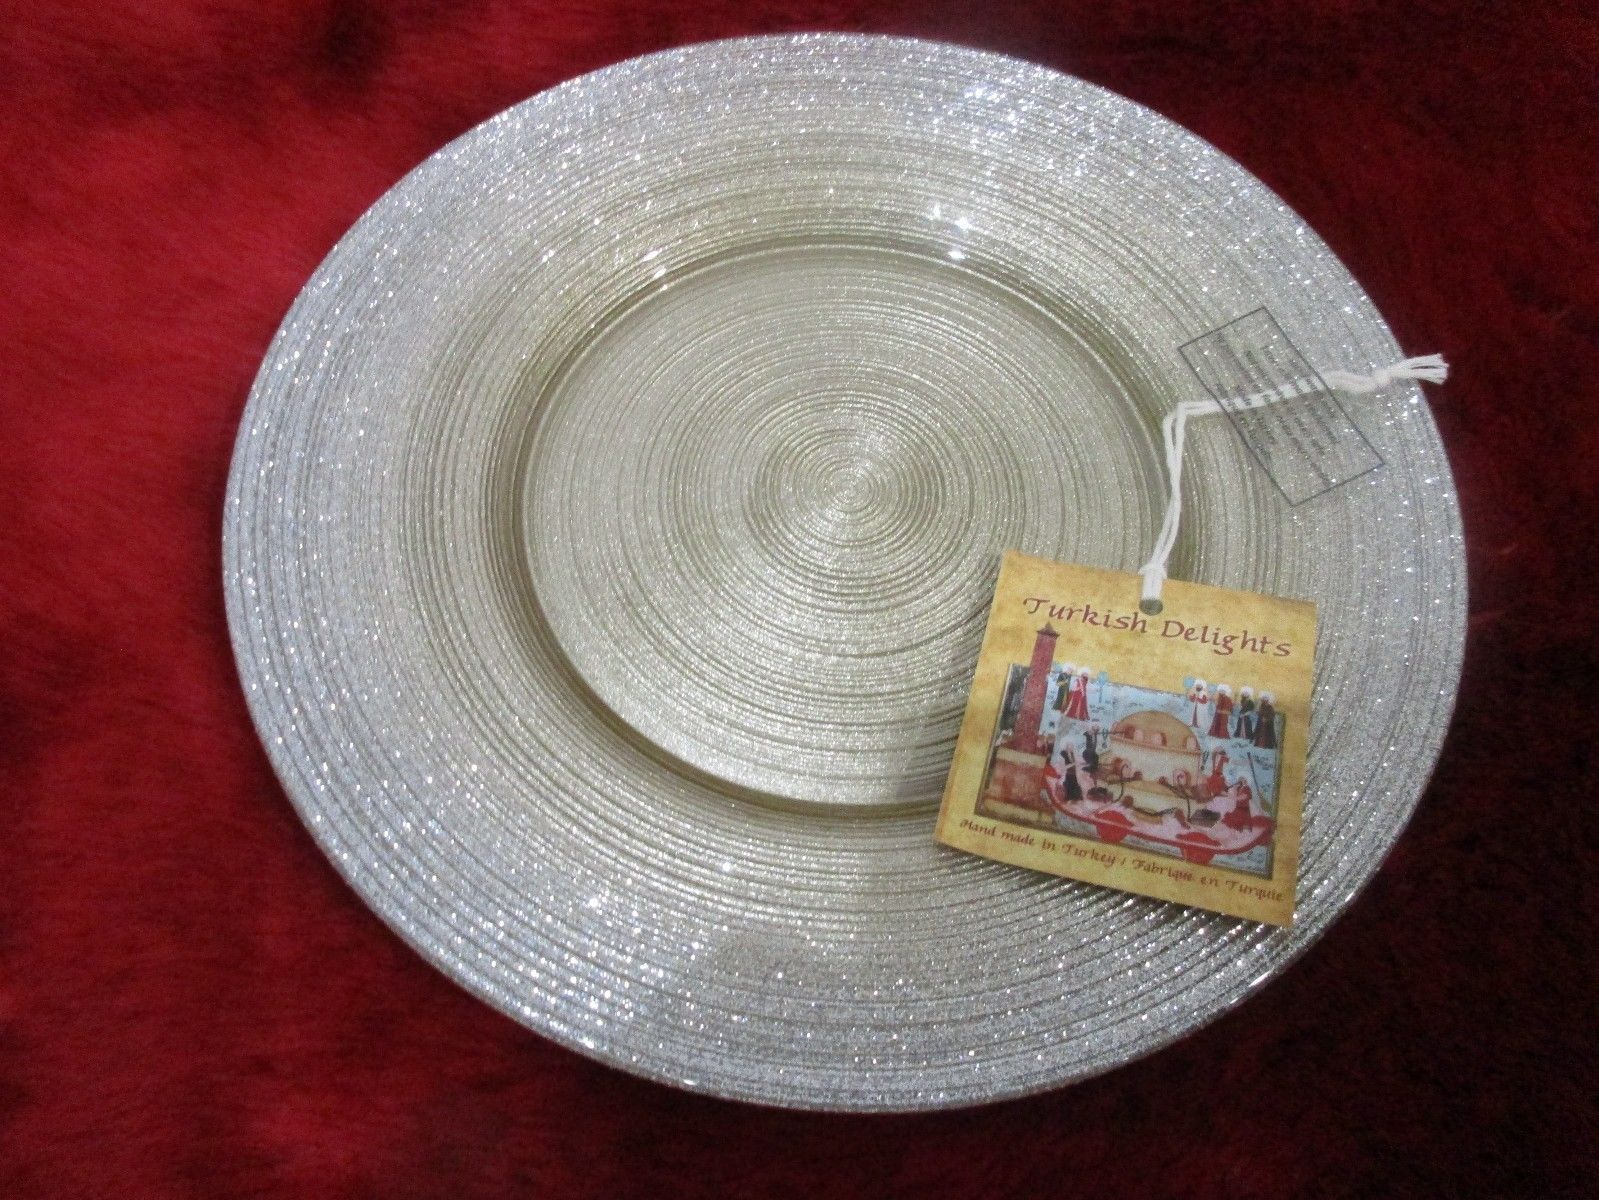 TURKISH DELIGHTS GOLD SILVER SPARKLE SALAD GLASS PLATES SET/2 & Turkish Delights Gold Silver Sparkle Salad and 50 similar items